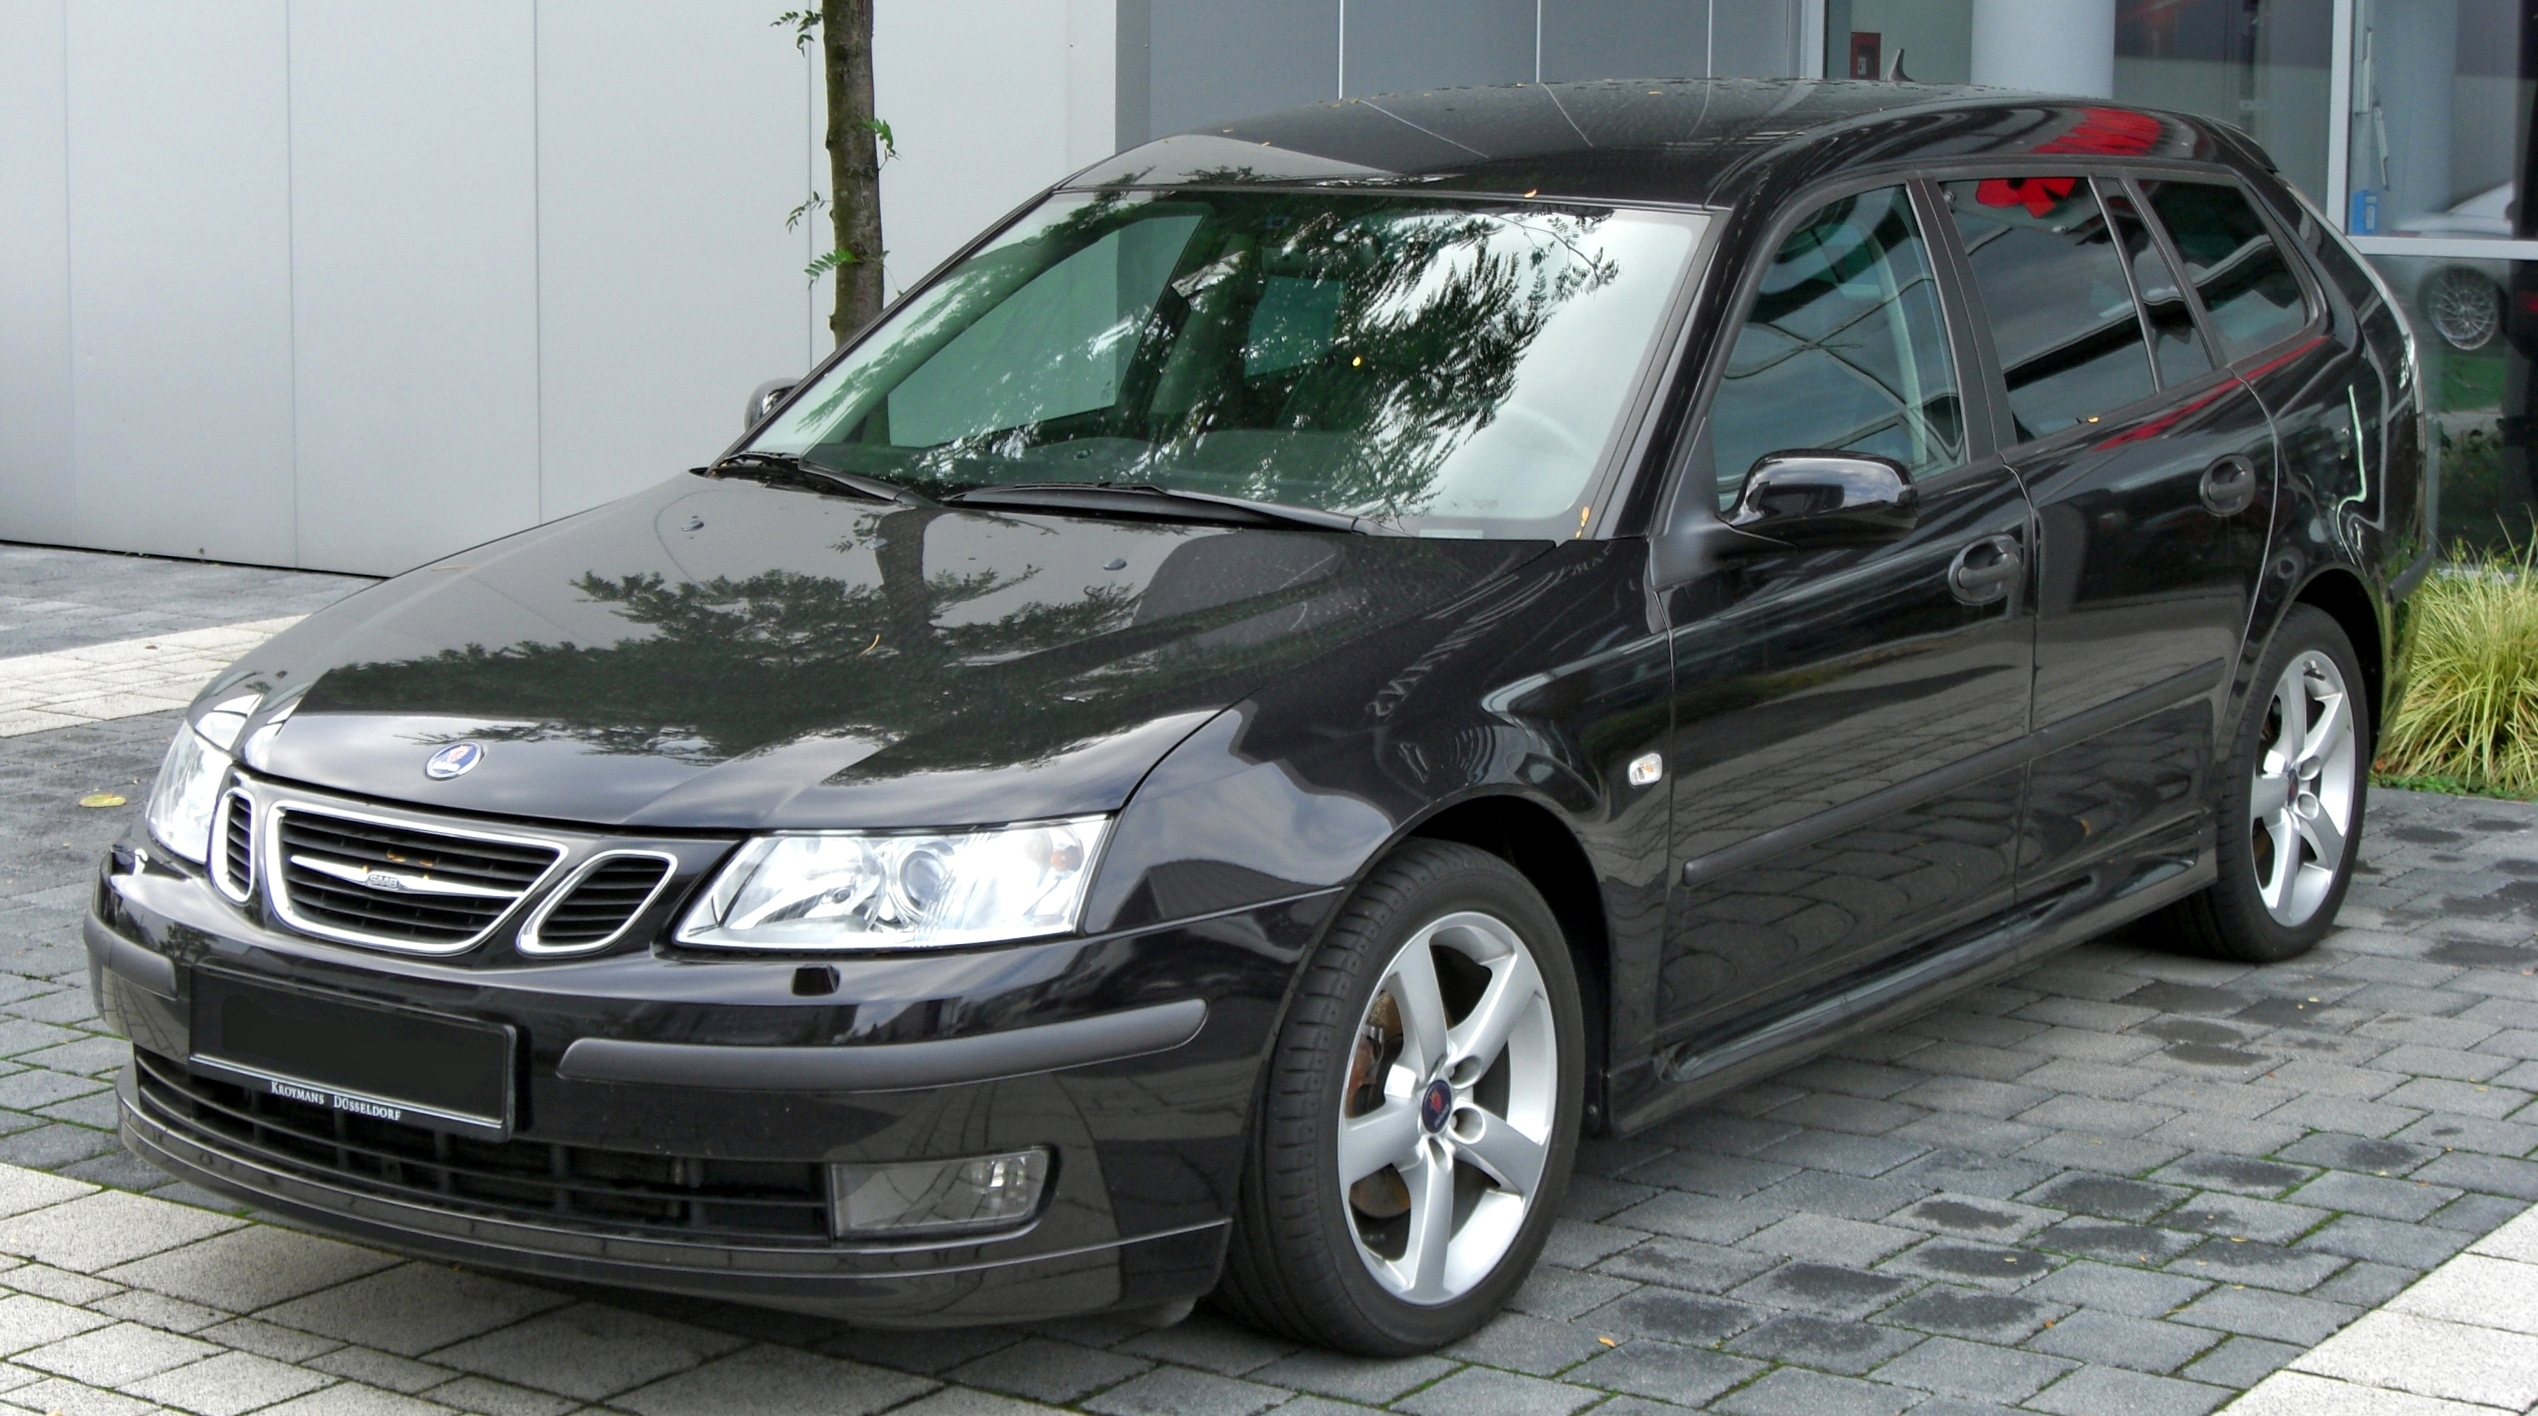 file saab 9 3 sportcombi front jpg wikimedia commons. Black Bedroom Furniture Sets. Home Design Ideas